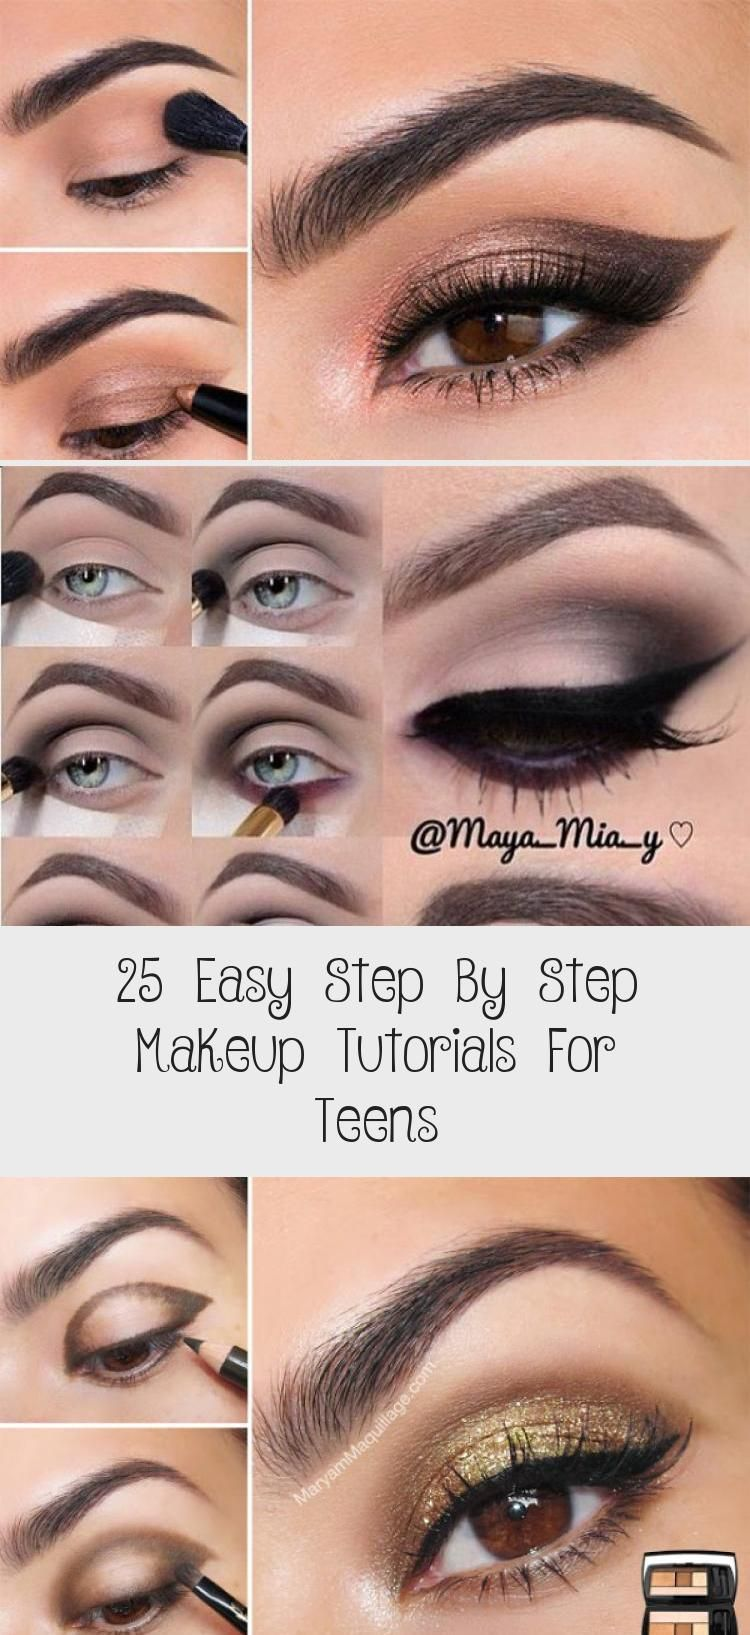 25 Easy Step By Step Makeup Tutorials For Teens - Makeup ...